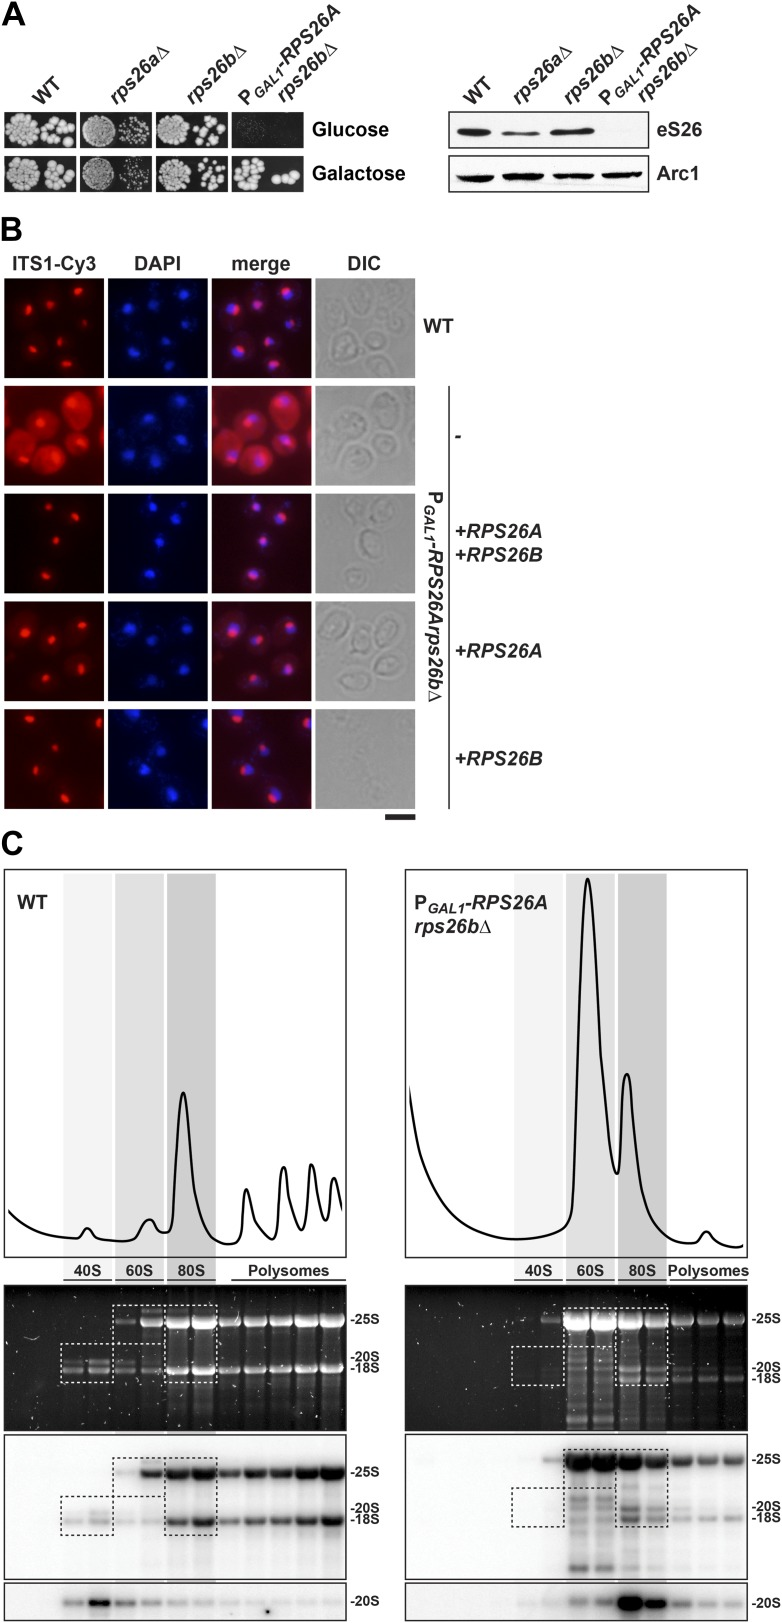 eS26 is required for cytoplasmic processing of immature 20S pre-rRNA to mature 18S rRNA. ( A ) eS26 is essential for viability in yeast. Left panel: WT, rps26aΔ, rps26bΔ and the conditional mutant P GAL1 - RPS26Arps26bΔ were spotted in 10-fold dilutions on galactose and repressive glucose containing media and grown at 30°C for 2–4 days. Right panel: protein levels of eS26 in whole cell extracts of indicated strains were determined by Western analyses using α-eS26 antibodies. Arc1 protein levels served as loading control. ( B ) eS26-depleted cells accumulate immature 20S pre-rRNA in the cytoplasm. P GAL1 - RPS26Arps26bΔ cells transformed with indicated plasmids were grown in glucose containing liquid media at 37°C to mid-log phase. Localization of 20S pre-rRNA was analyzed by FISH using a Cy3-labeled oligonucleotide complementary to the 5′ portion of ITS1 (red). Nuclear and mitochondrial DNA was stained with DAPI (blue). Scale bar = 5 µm. ( C ) eS26-depleted cells accumulate 80S-like particles. The indicated strains were grown in glucose containing liquid media at 30°C to mid-log phase. Cell extracts were prepared after cycloheximide treatment and subjected to sedimentation centrifugation on 7–50% sucrose density gradients. Polysome profiles were recorded at OD 254nm (top panels). The peaks for 40S and 60S subunits, 80S ribosomes and polysomes are indicated. Sucrose gradients were fractionated, the RNA was extracted, separated on a 2% Agarose gel, stained with GelRed (Biotium, middle panels) and subsequently analyzed by Northern blotting using probes against the indicated rRNAs (bottom panels). Exposure times for phosphoimager screens were 20 min for 25S and 18S rRNA, and 3–4 hr for 20S pre-rRNAs. DOI: http://dx.doi.org/10.7554/eLife.03473.005